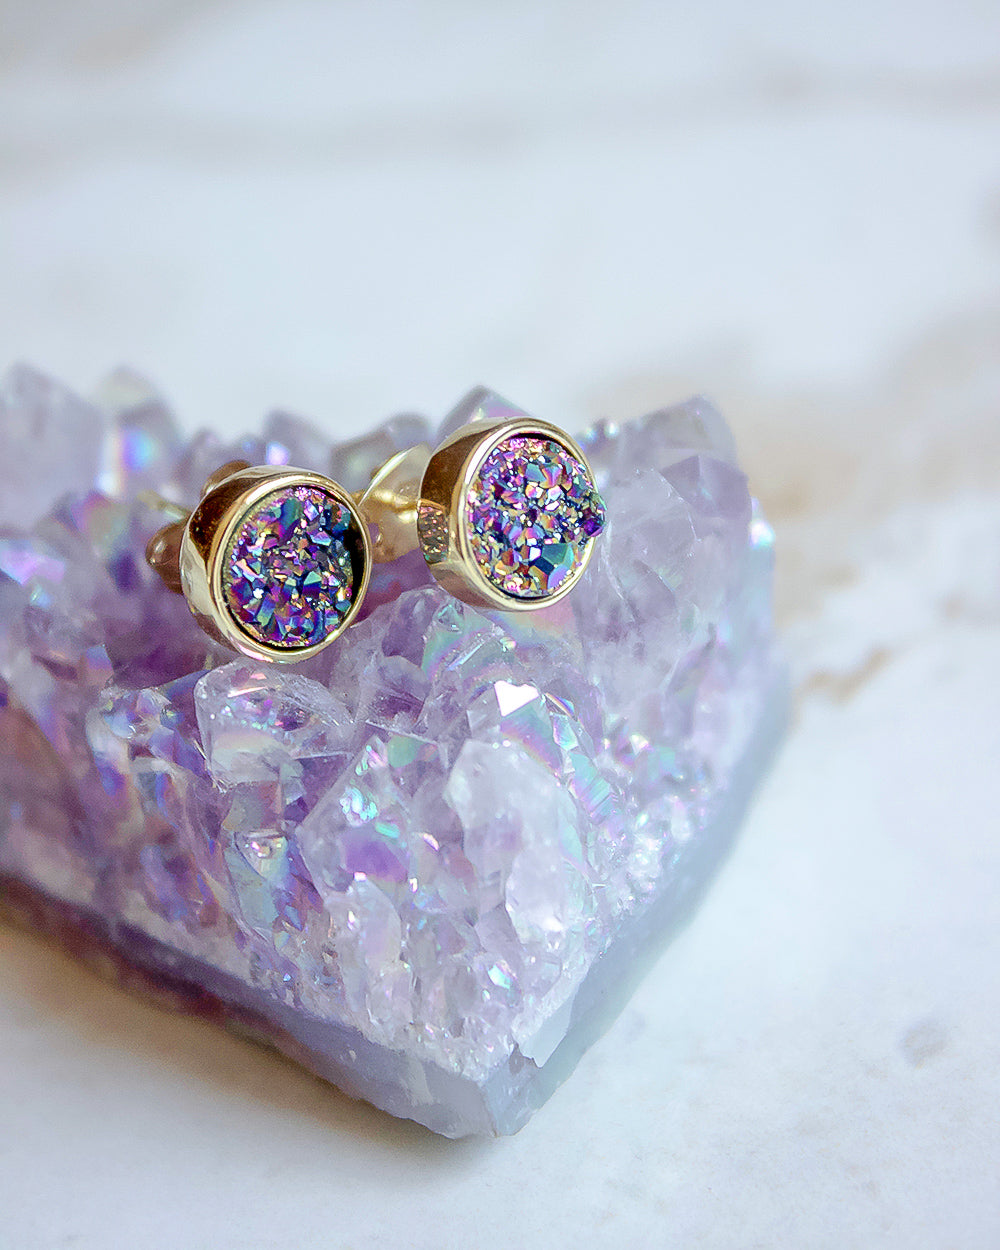 24KT Gold Plated 8mm Druzy Stud Earrings in Rainbow Galaxy - Babe Outfitters